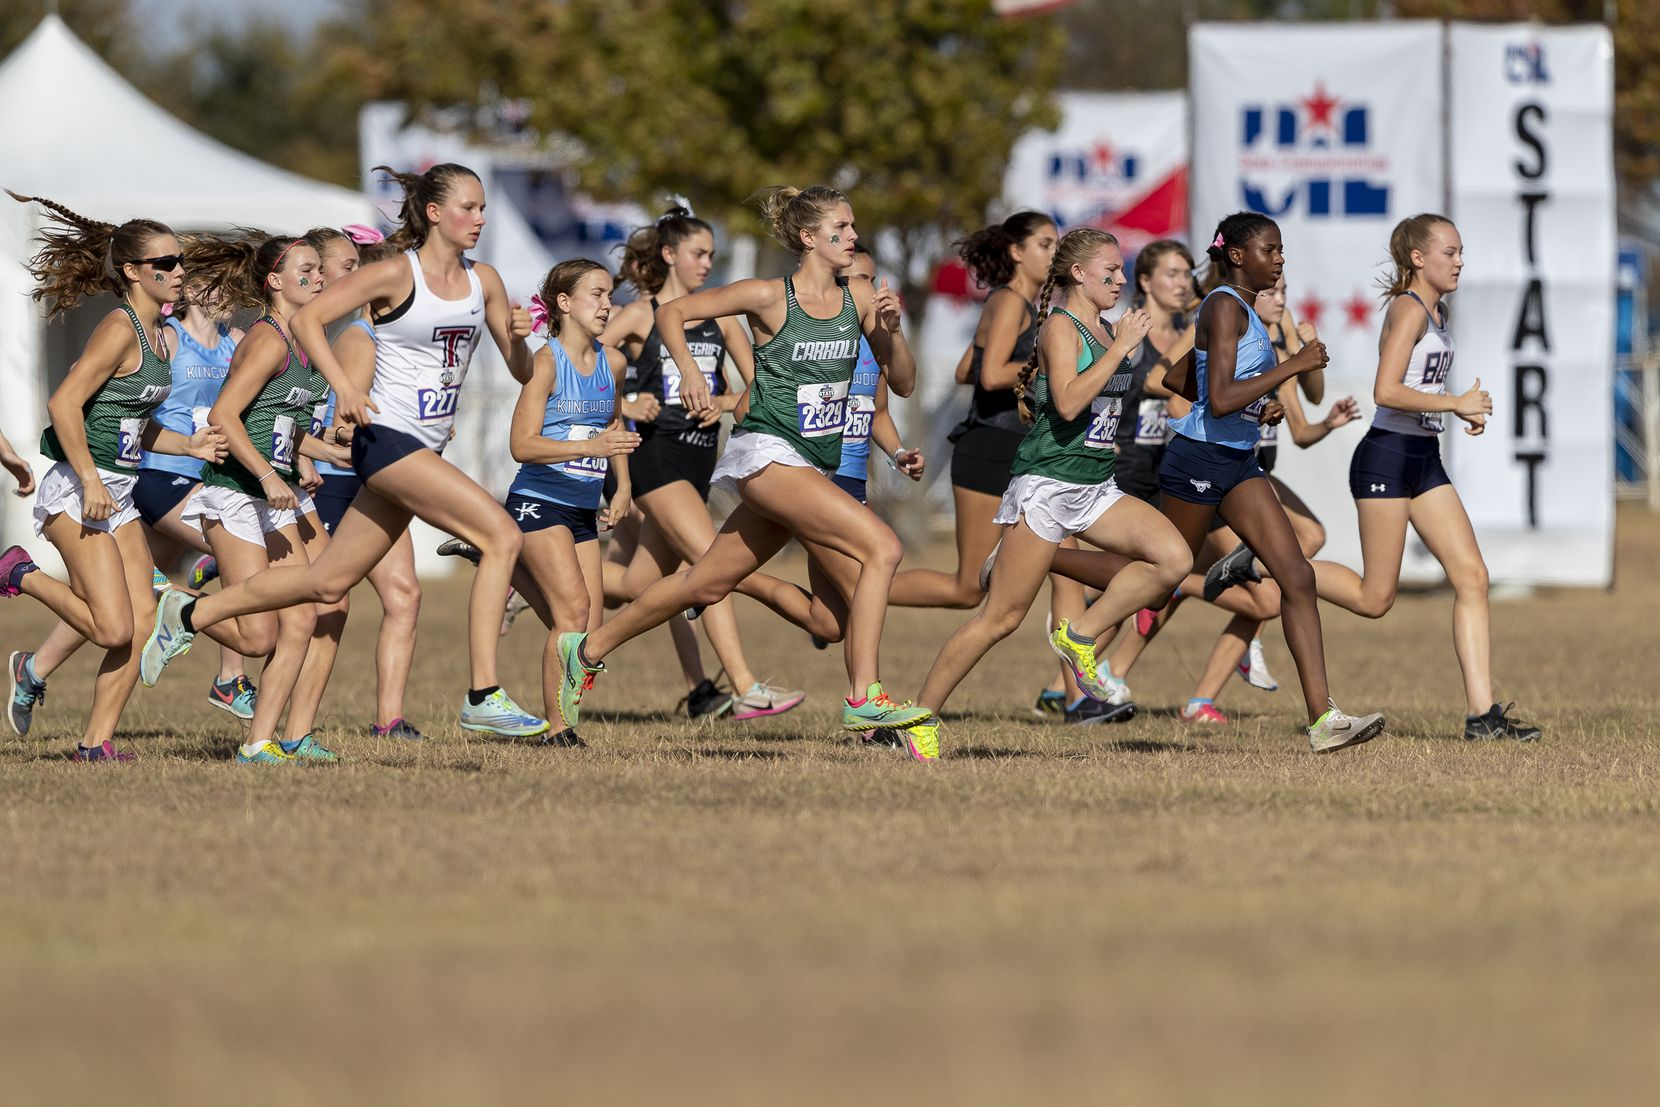 Southlake Carroll begins the girls UIL Class 6A state cross country meet in Round Rock, Tuesday, Nov., 24, 2020. (Stephen Spillman/Special Contributor)